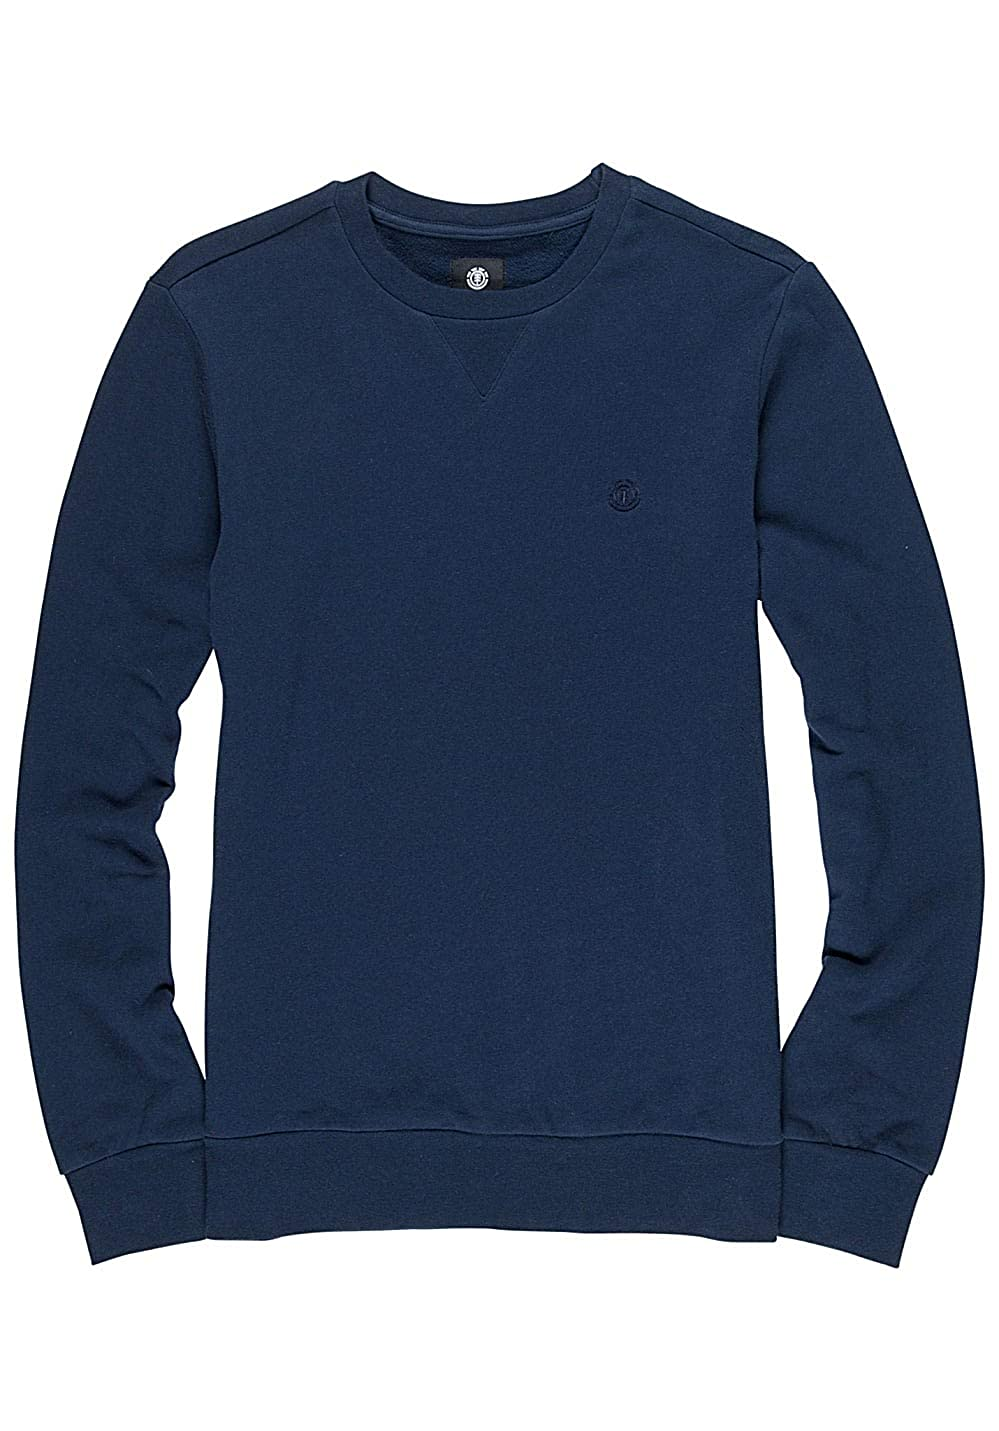 Element Herren Sweatshirt Blau Indigo